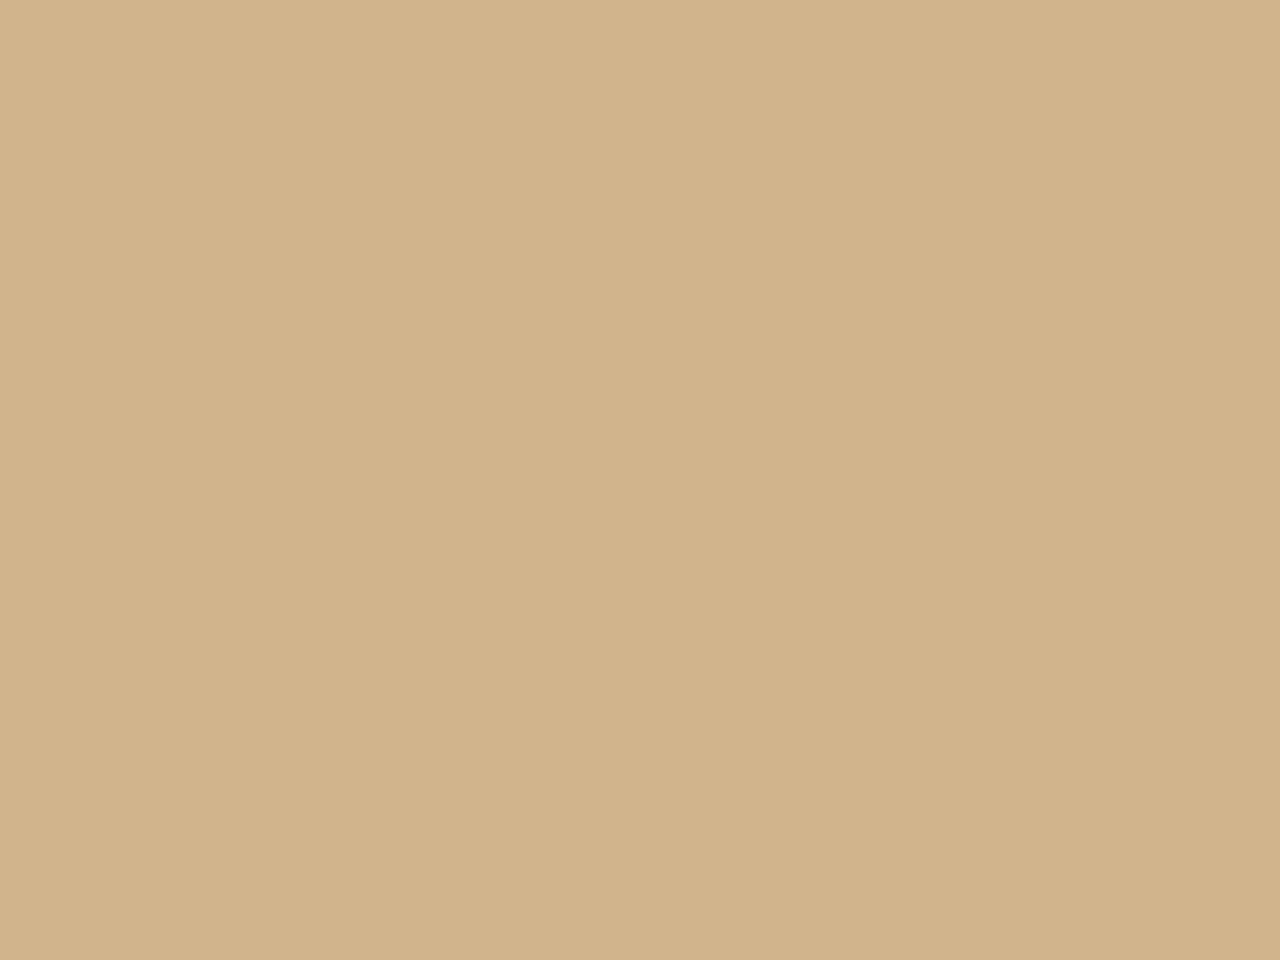 1280x960 Tan Solid Color Background